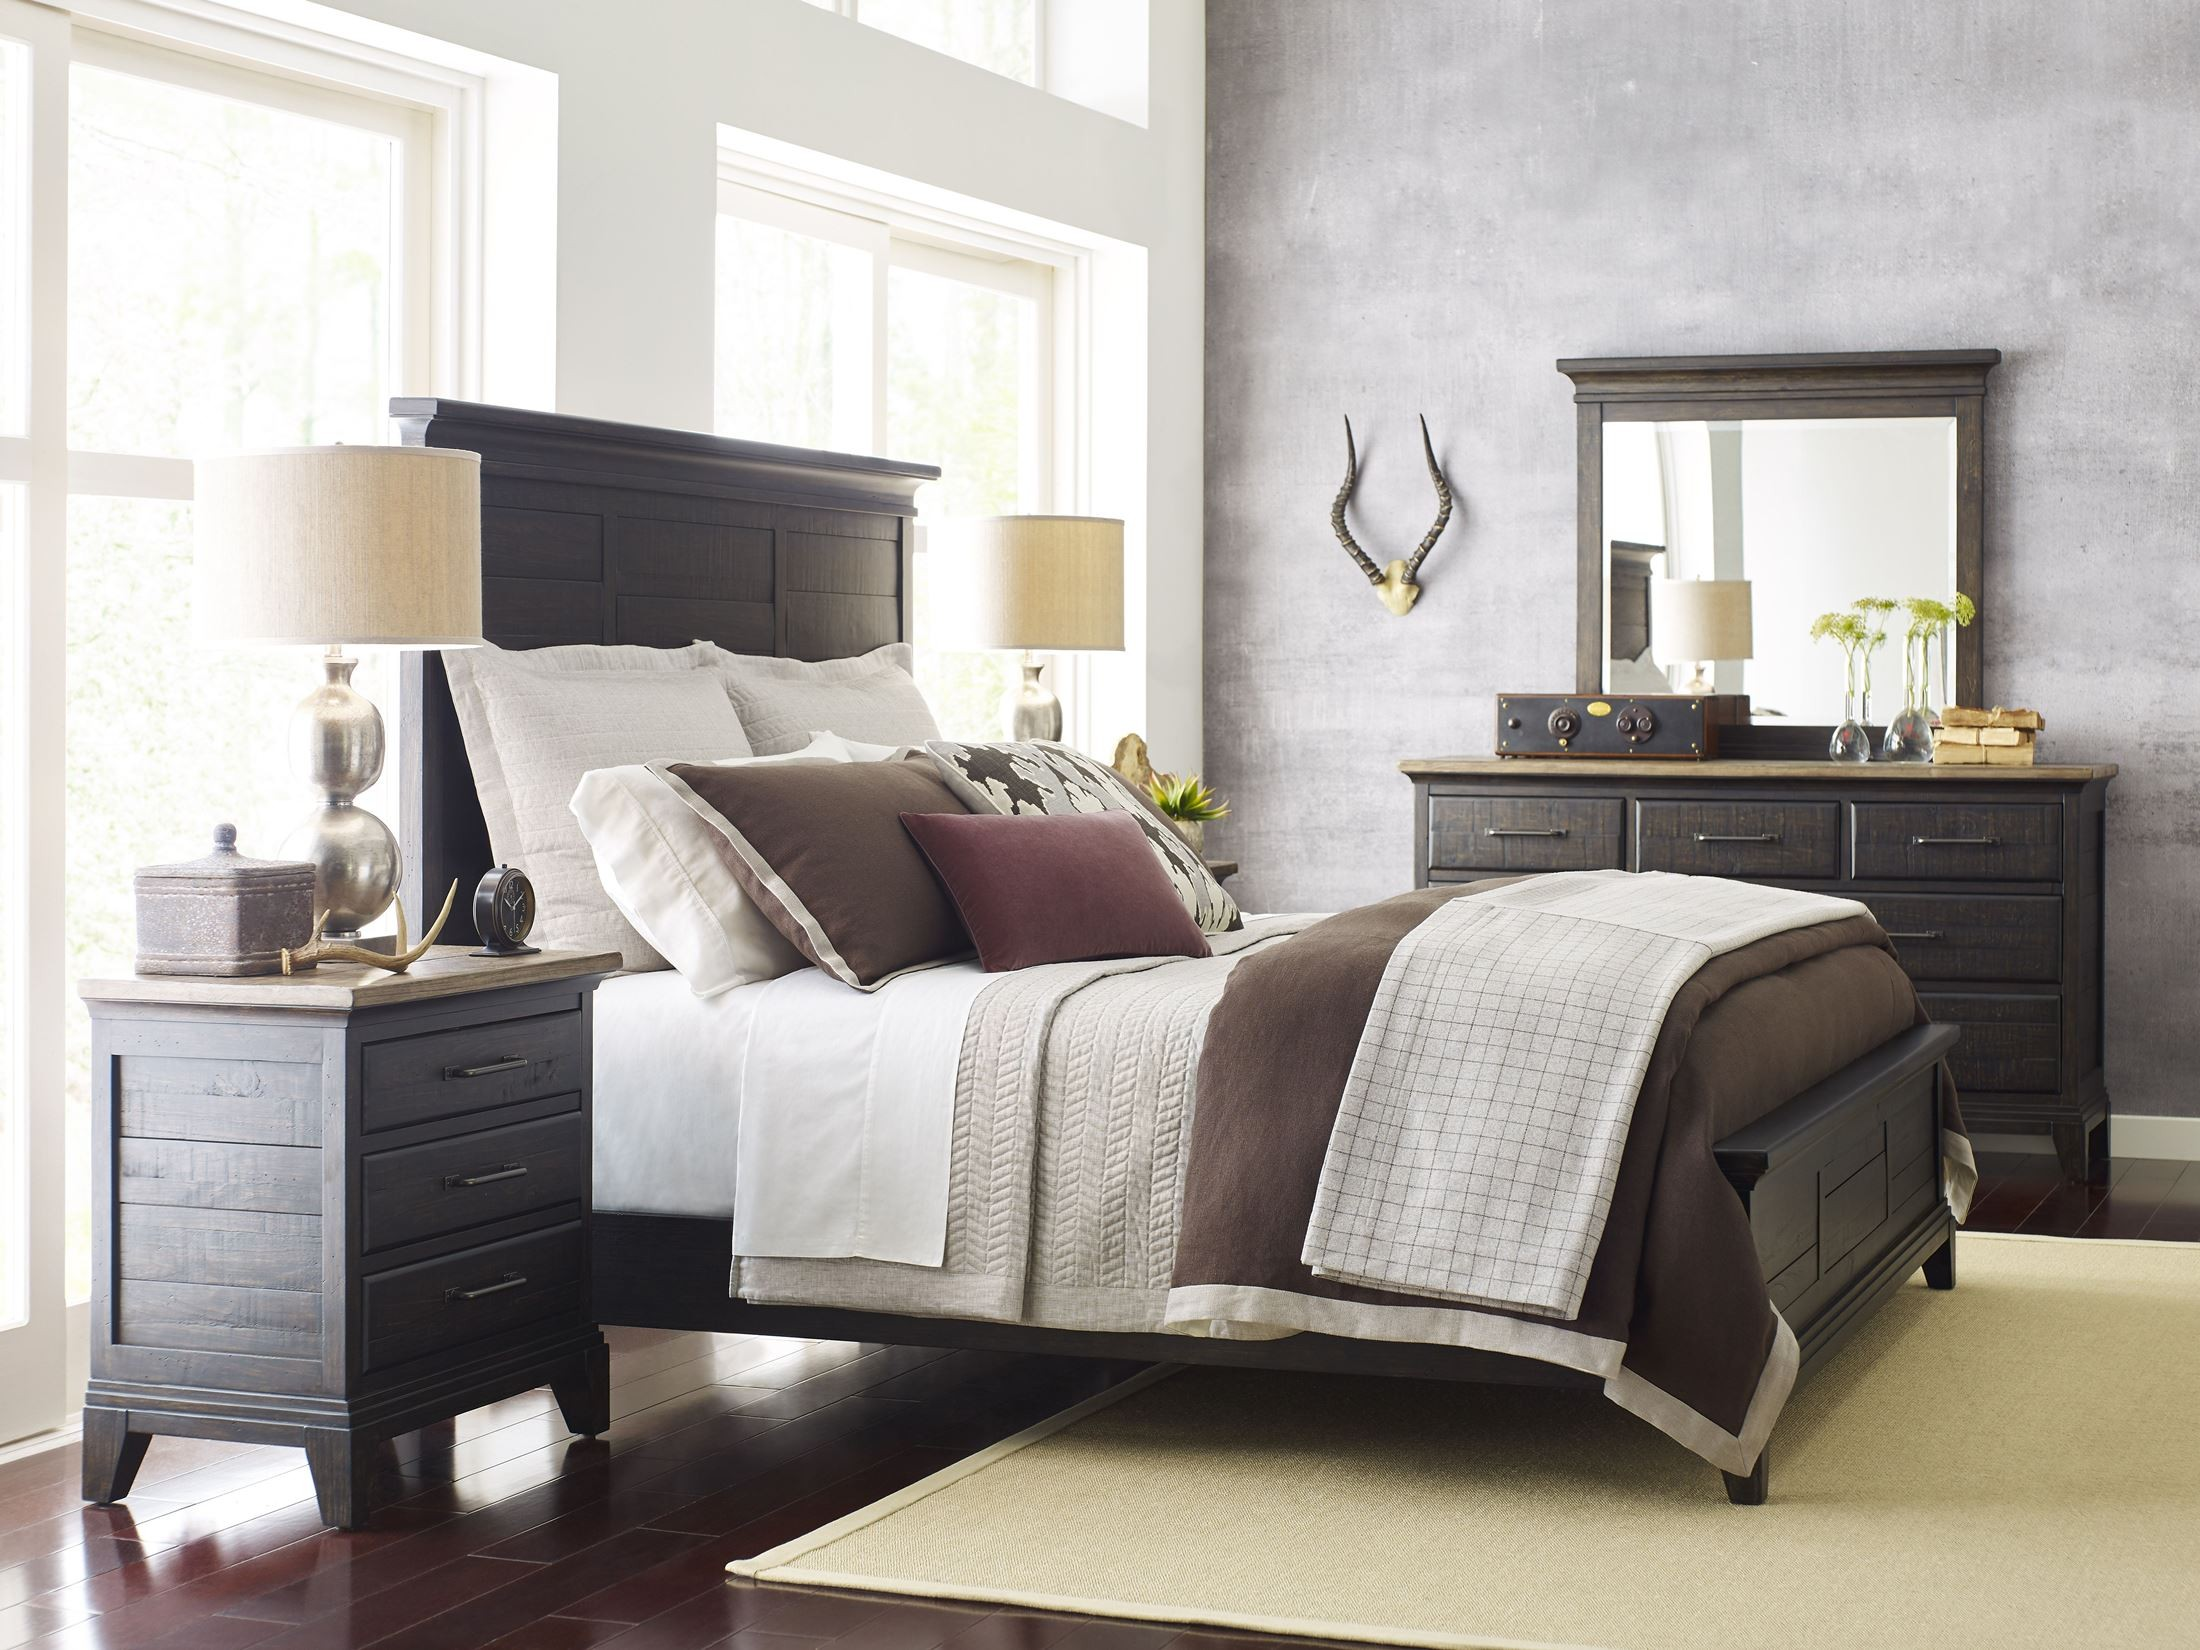 Plank road charcoal jessup panel bedroom set from kincaid - Kincaid bedroom furniture for sale ...